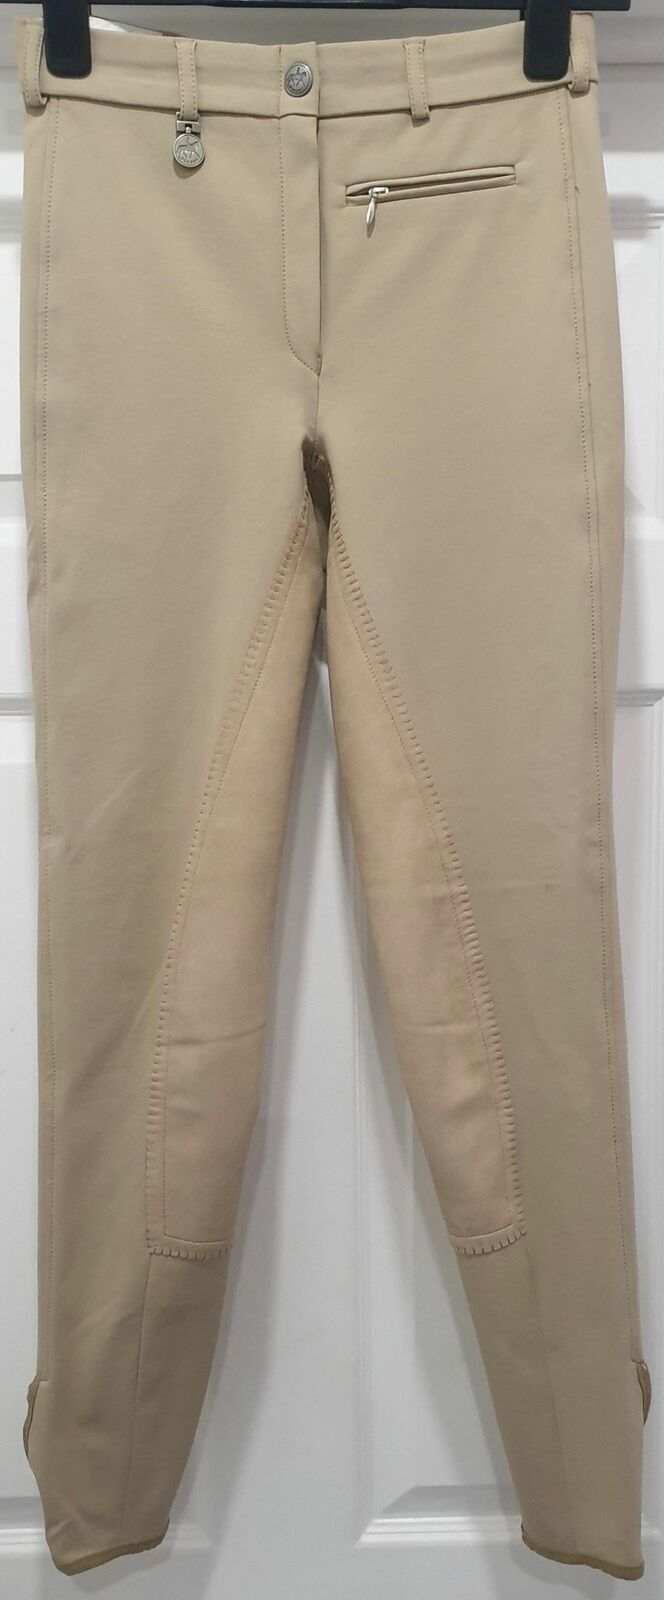 PIKEUR Beige Jodphur Synthetic Suede Seat Breeches Pants Trousers GER36 UK8